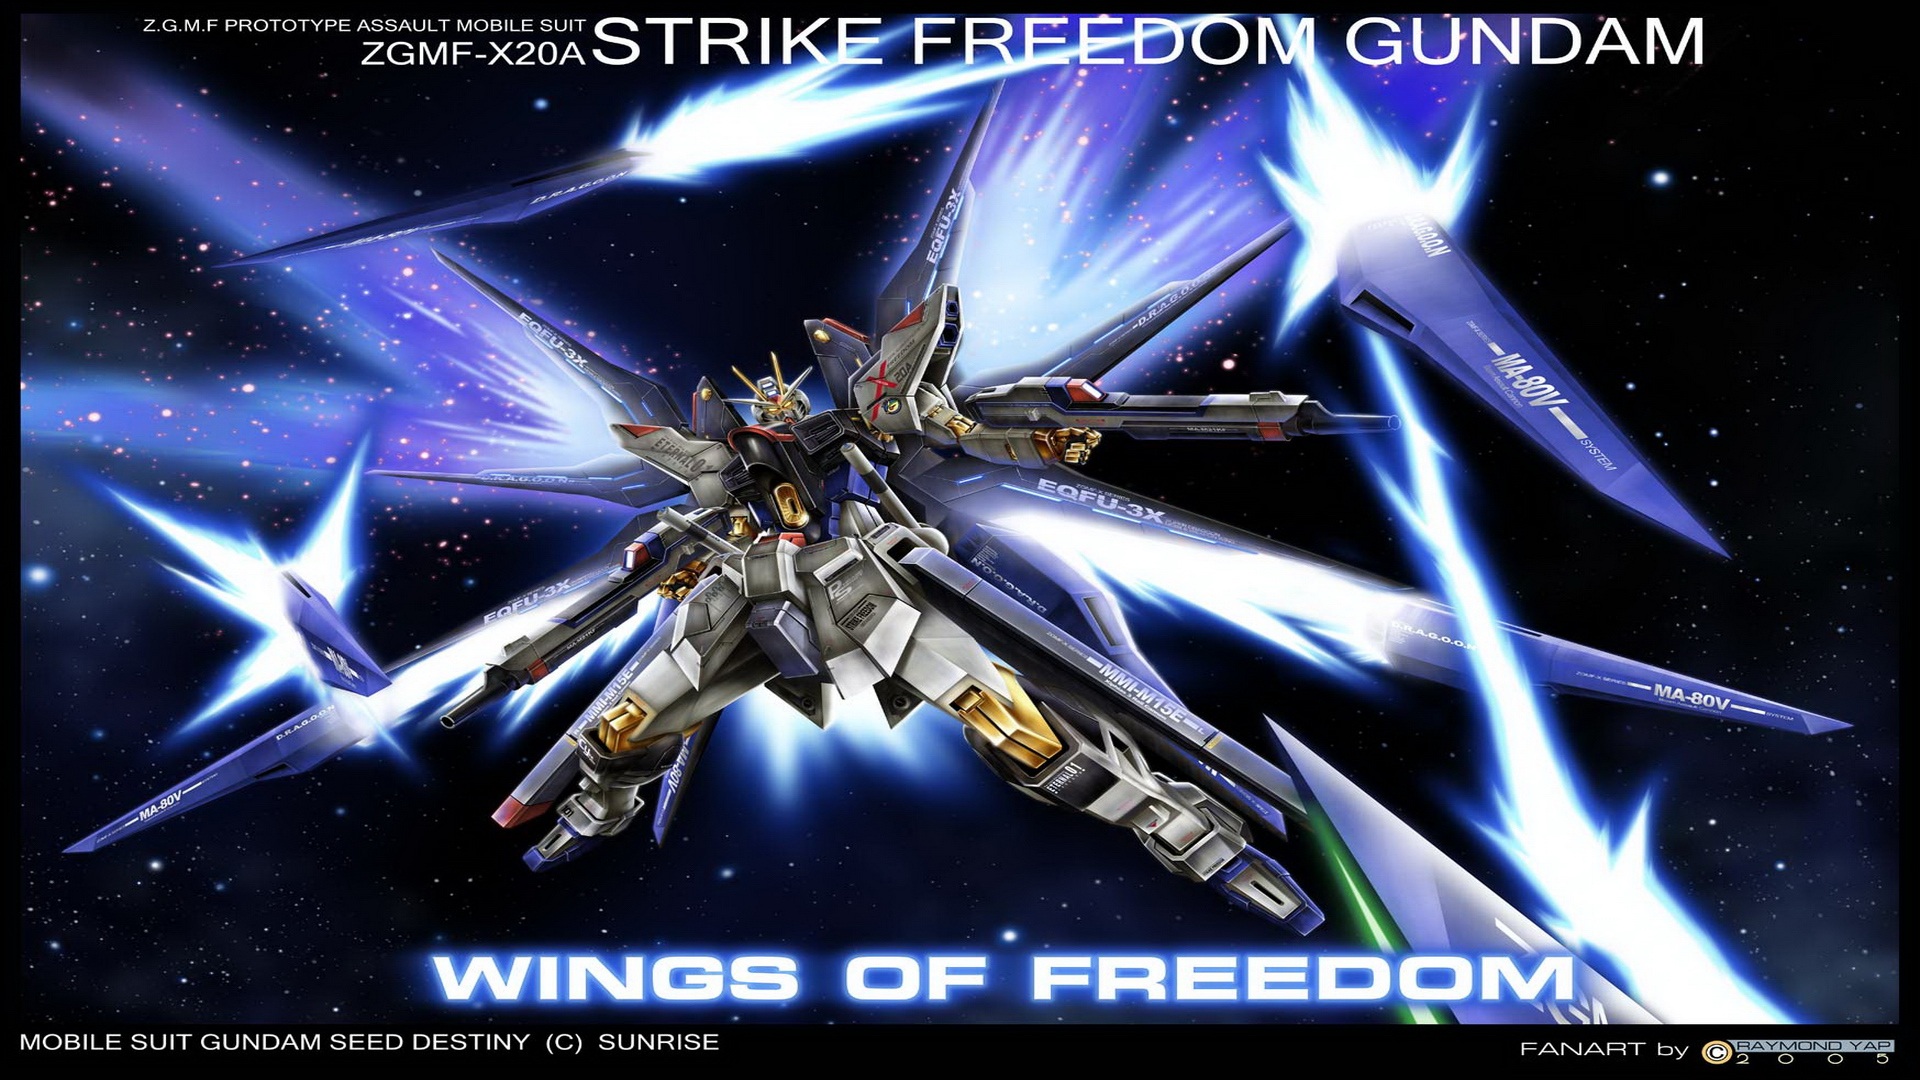 Pin Images Of Gundam Seed Wallpaper 1680x1050 1920x1080 More on 1920x1080